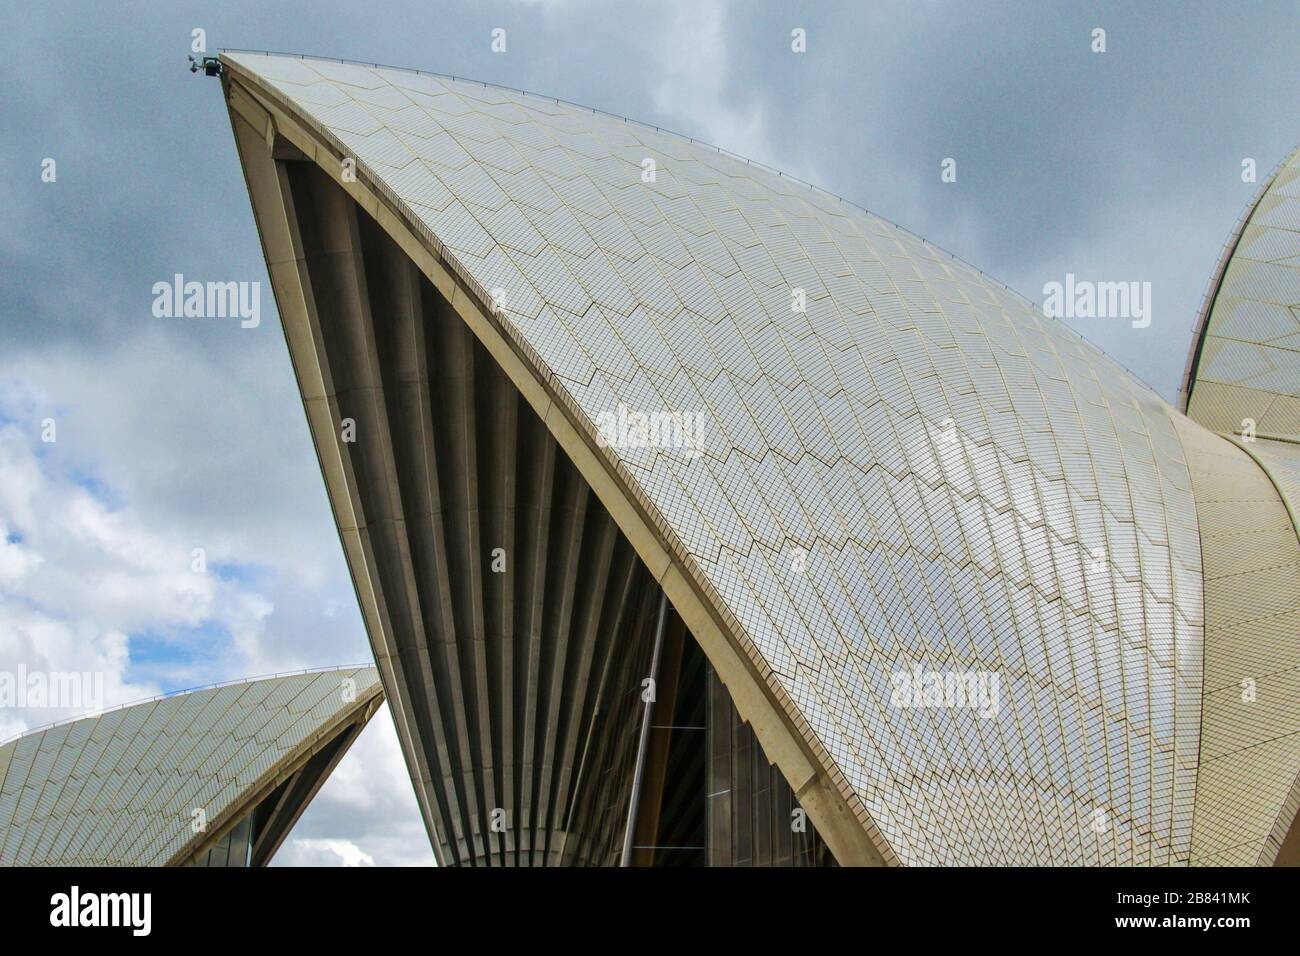 Detail of wing on the Opera House in Sydney Australia Stock Photo